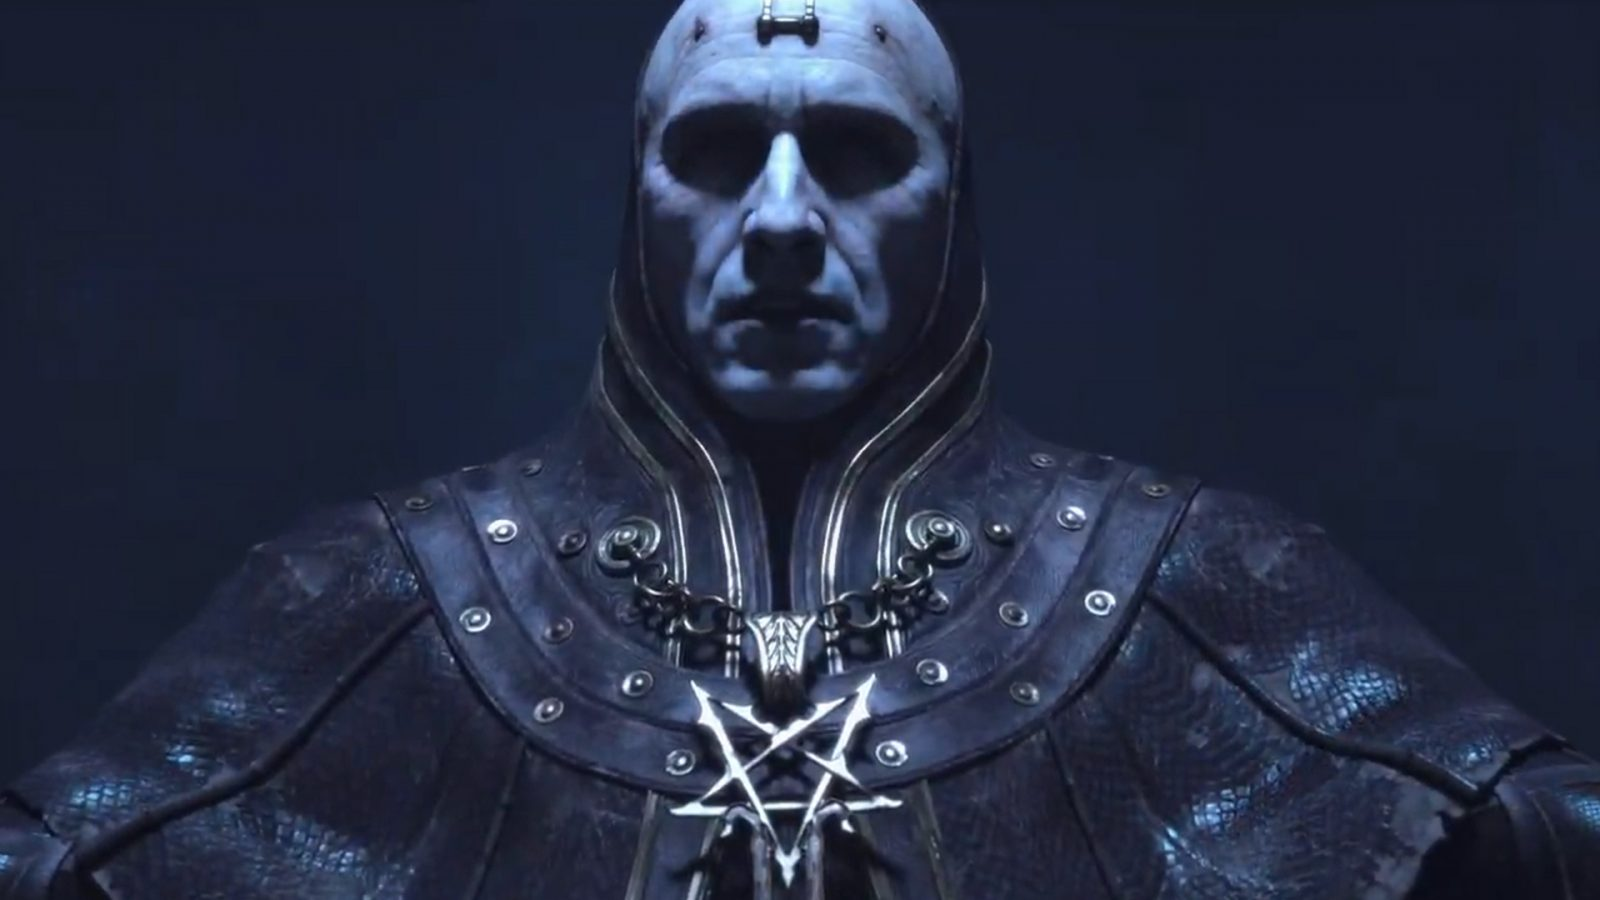 Diablo 4 will have cosmetic microtransactions